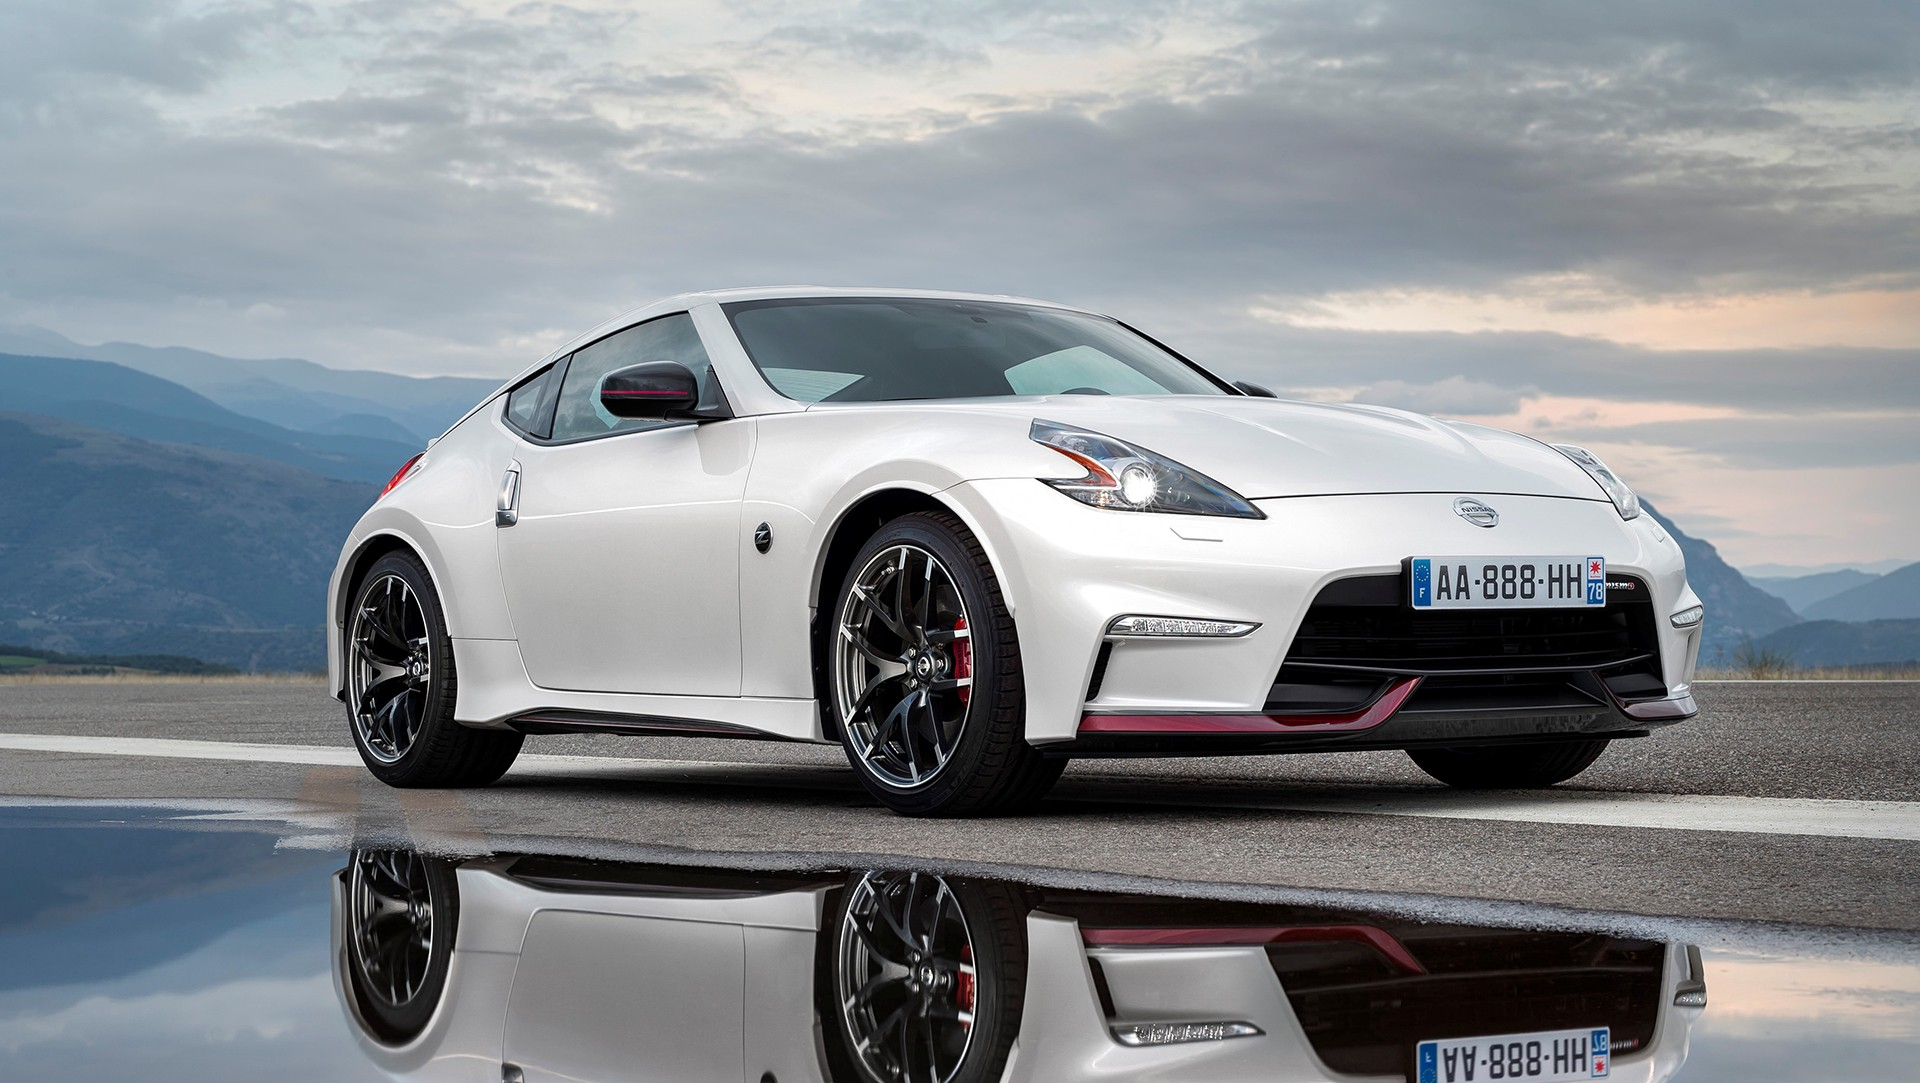 Exceptional 2016 Nissan 370z Nismo Edition]